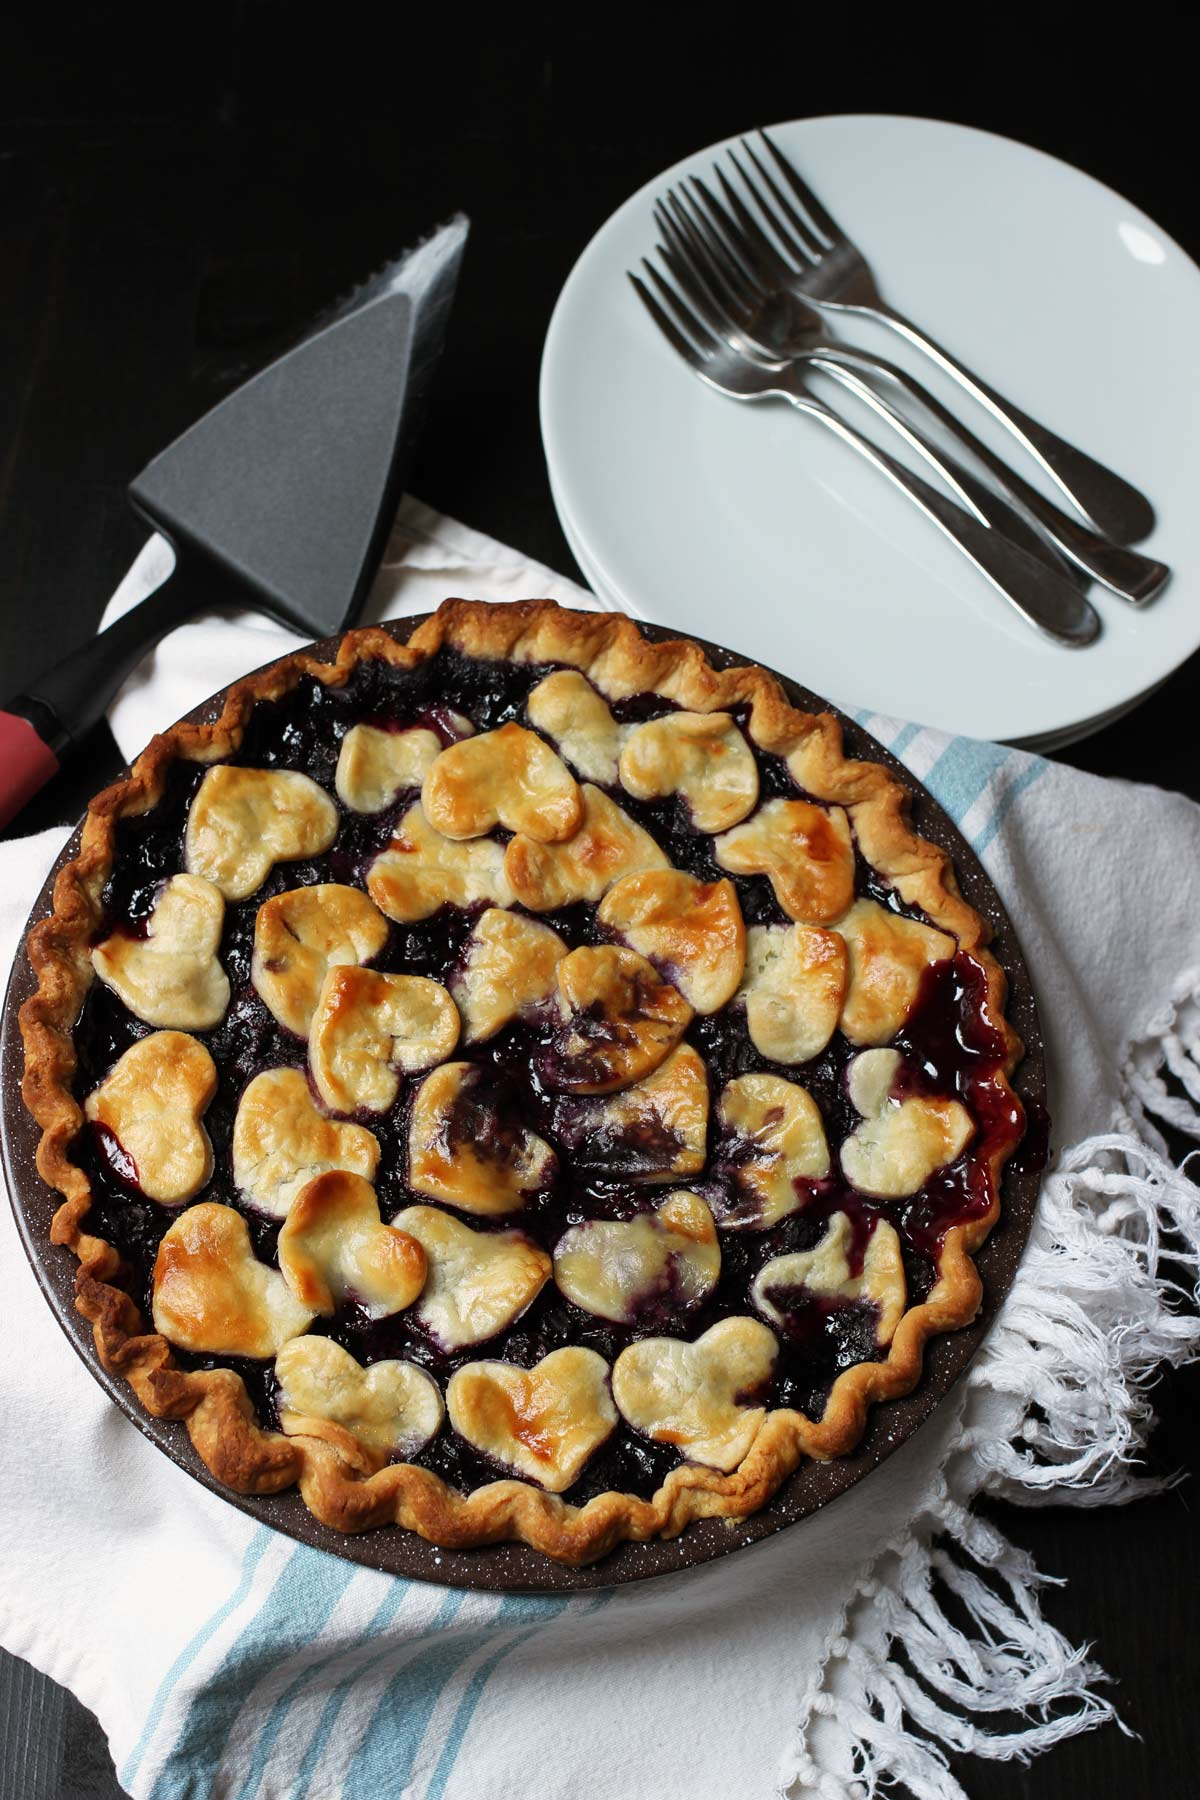 blueberry pie on blue striped cloth with pie server and stack of plates and forks.